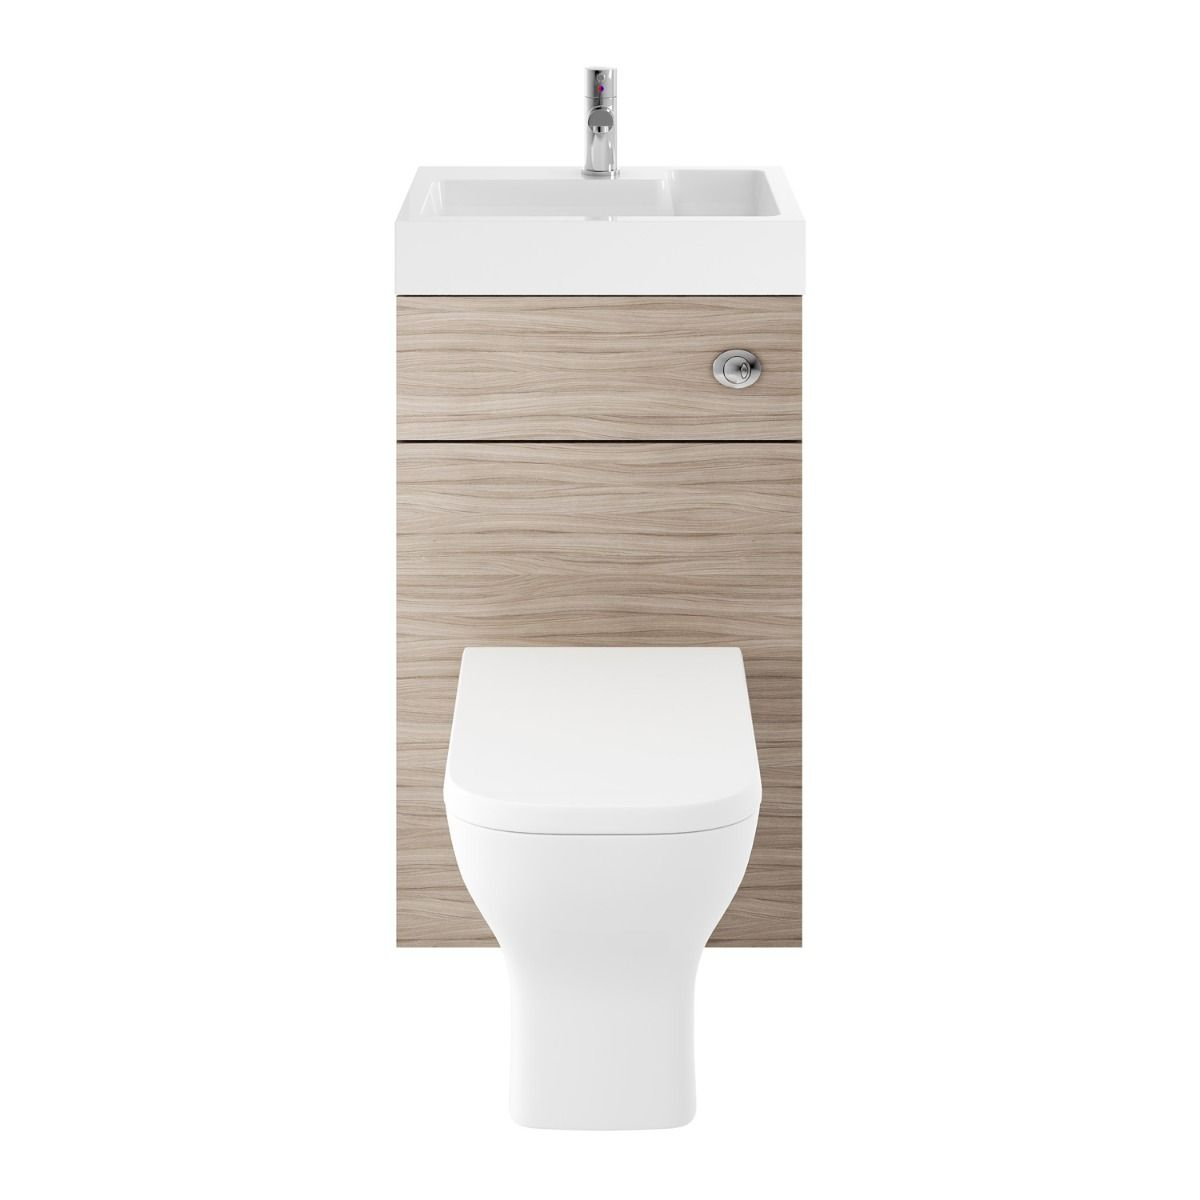 Driftwood Toilet with Integrated Basin